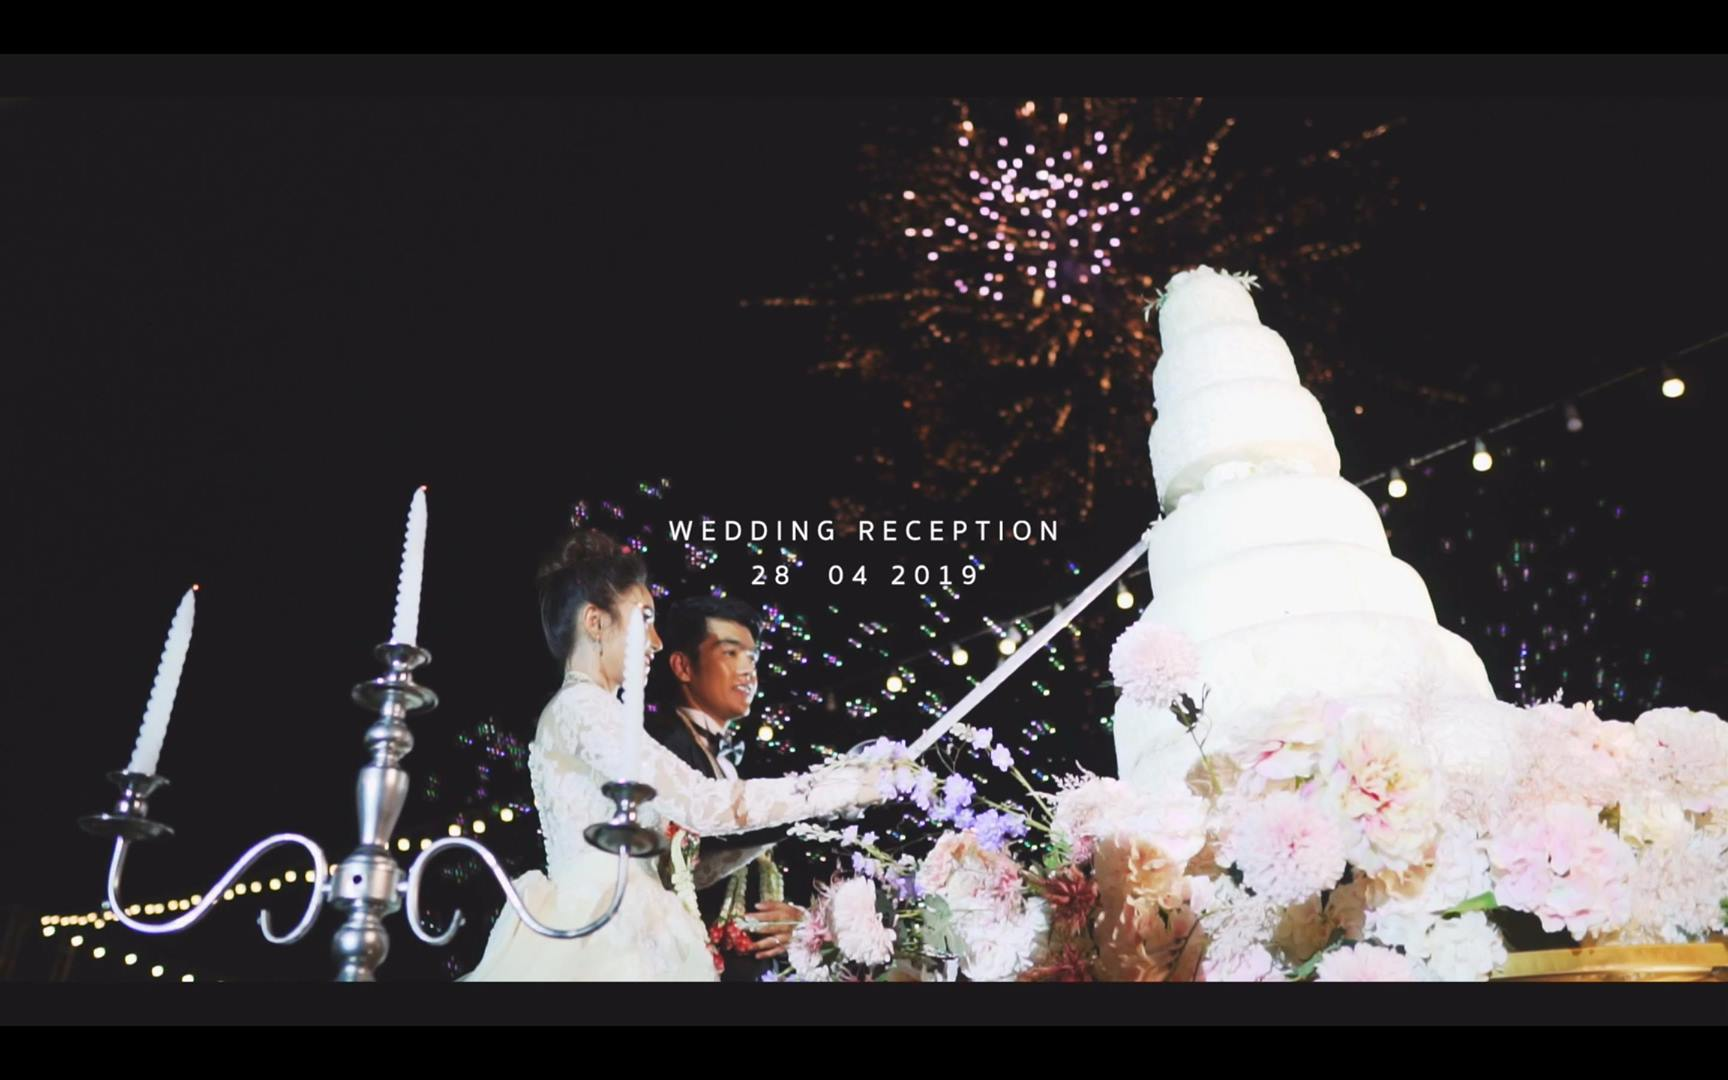 AON & POP WEDDING's Reception CINEMATOGRAPHY